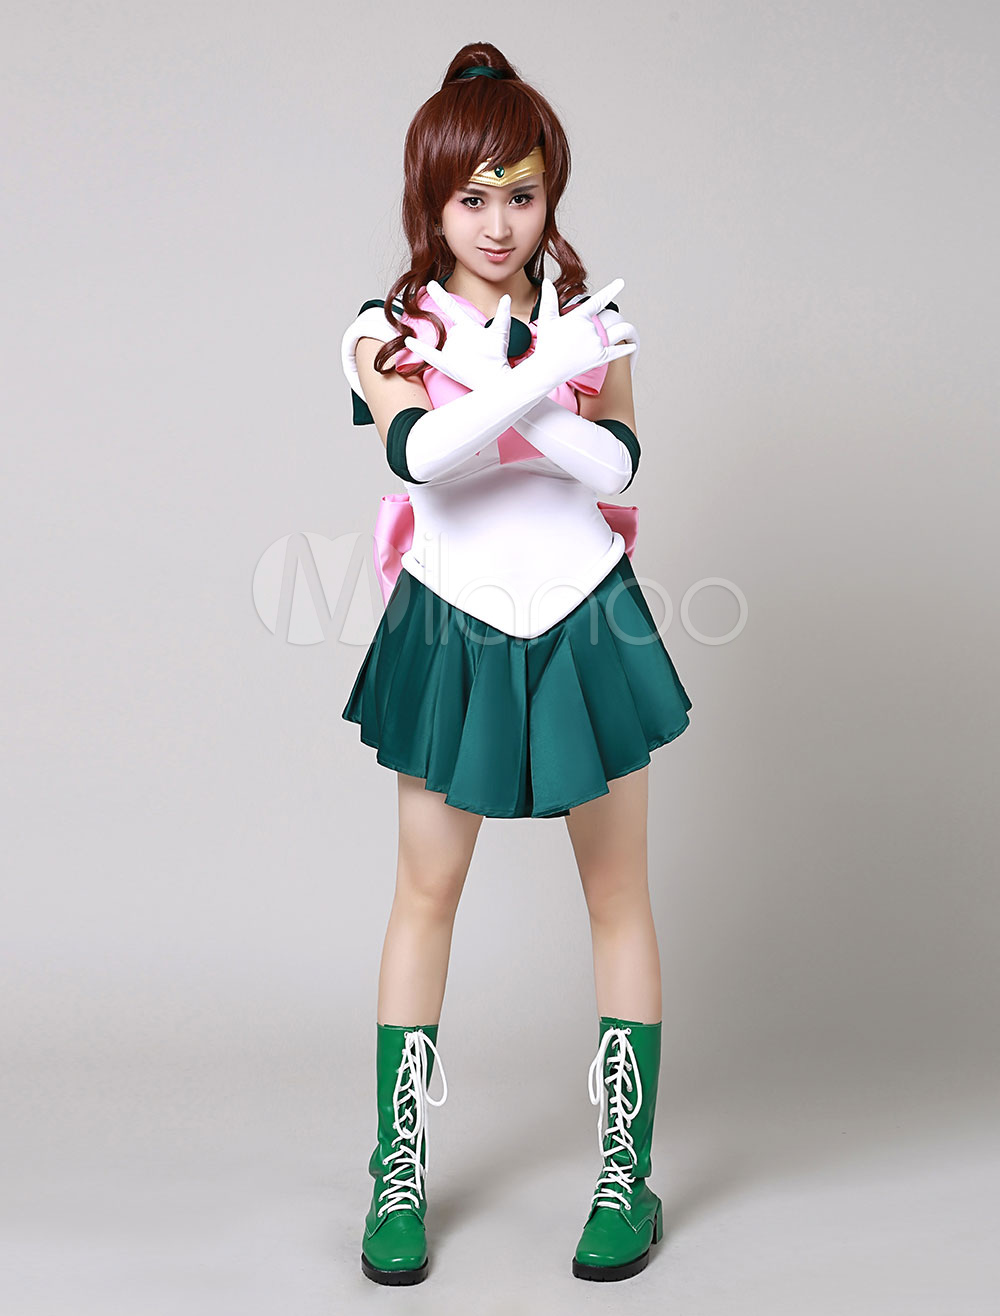 sailor moon sailor jupiter makoto kino cosplay costume. Black Bedroom Furniture Sets. Home Design Ideas